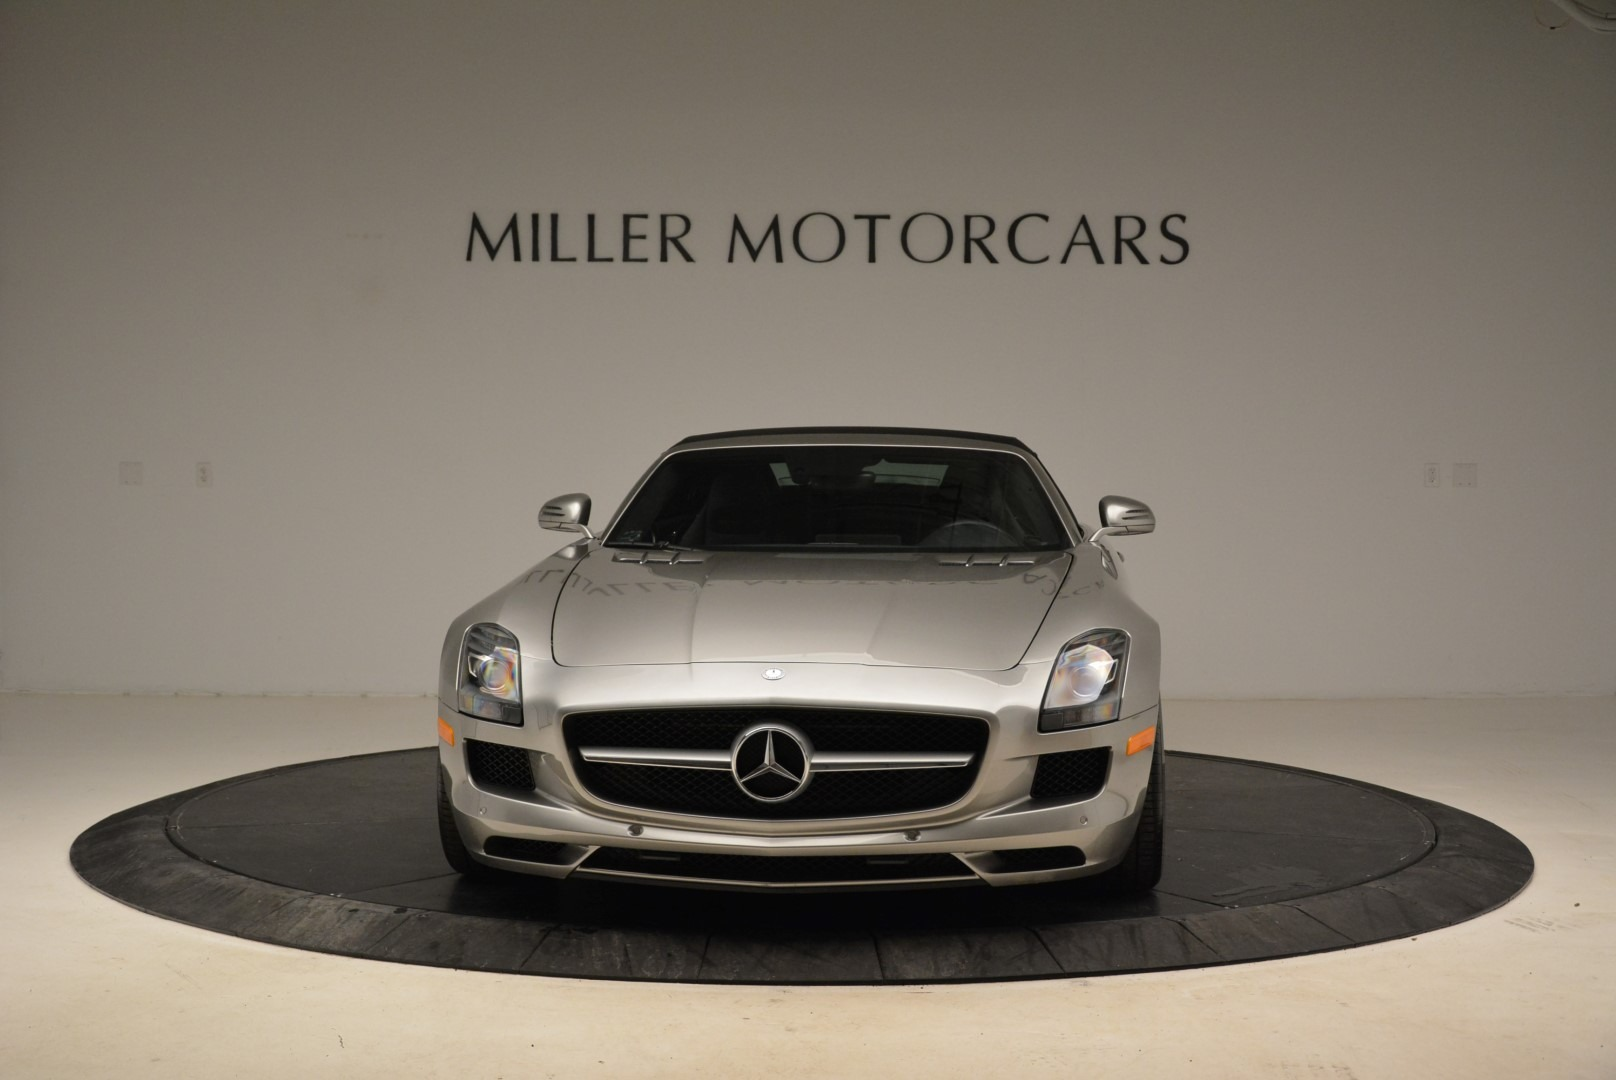 Used 2012 Mercedes-Benz SLS AMG  For Sale In Westport, CT 2068_p20